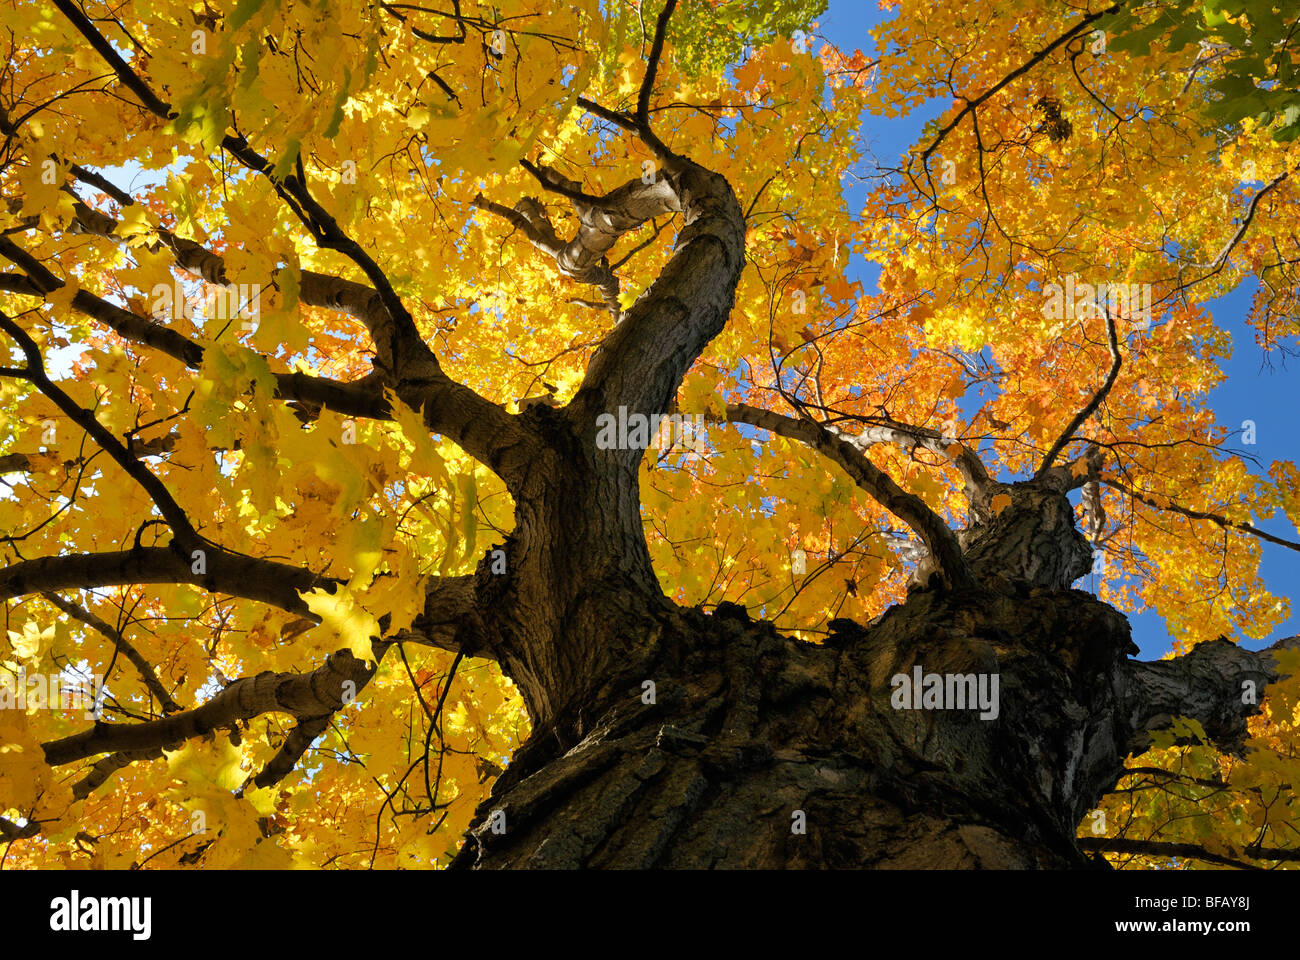 Abstract view of old maple tree in fall colors near Sackets harbor, New York. - Stock Image